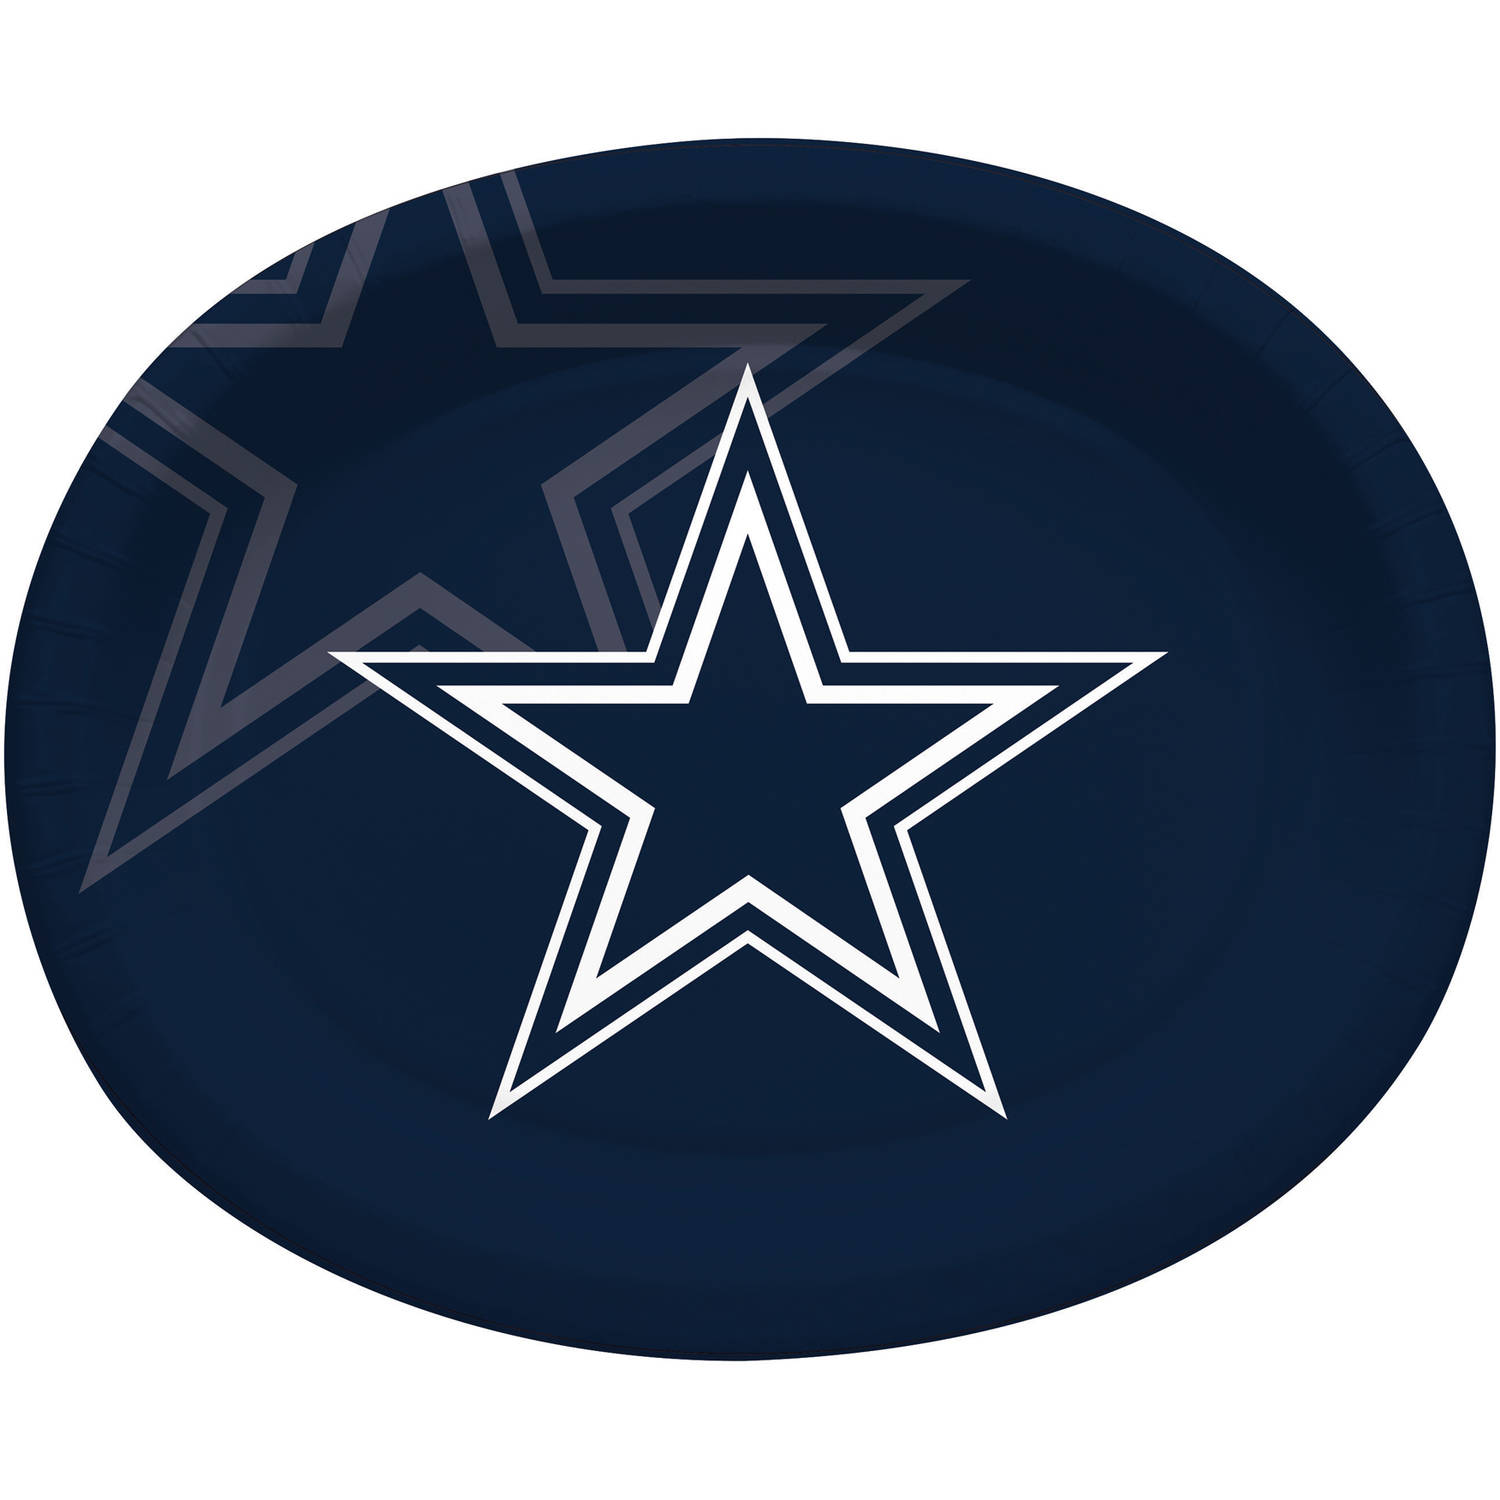 Exceptional Dallas Cowboys KickOff Chair   Folding Tailgate   Camping   Walmart.com